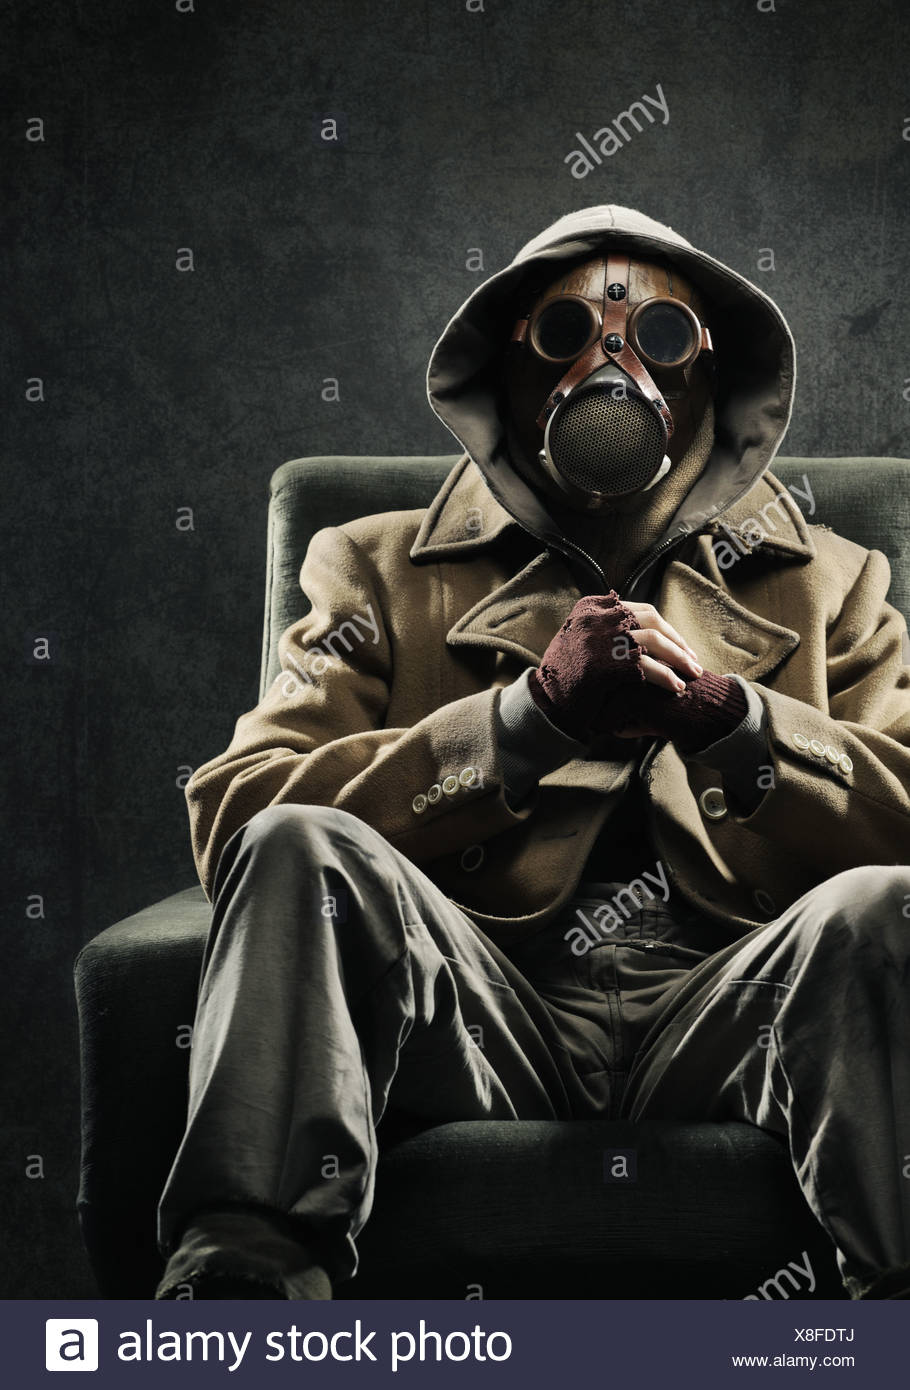 Man in gas mask - Stock Image